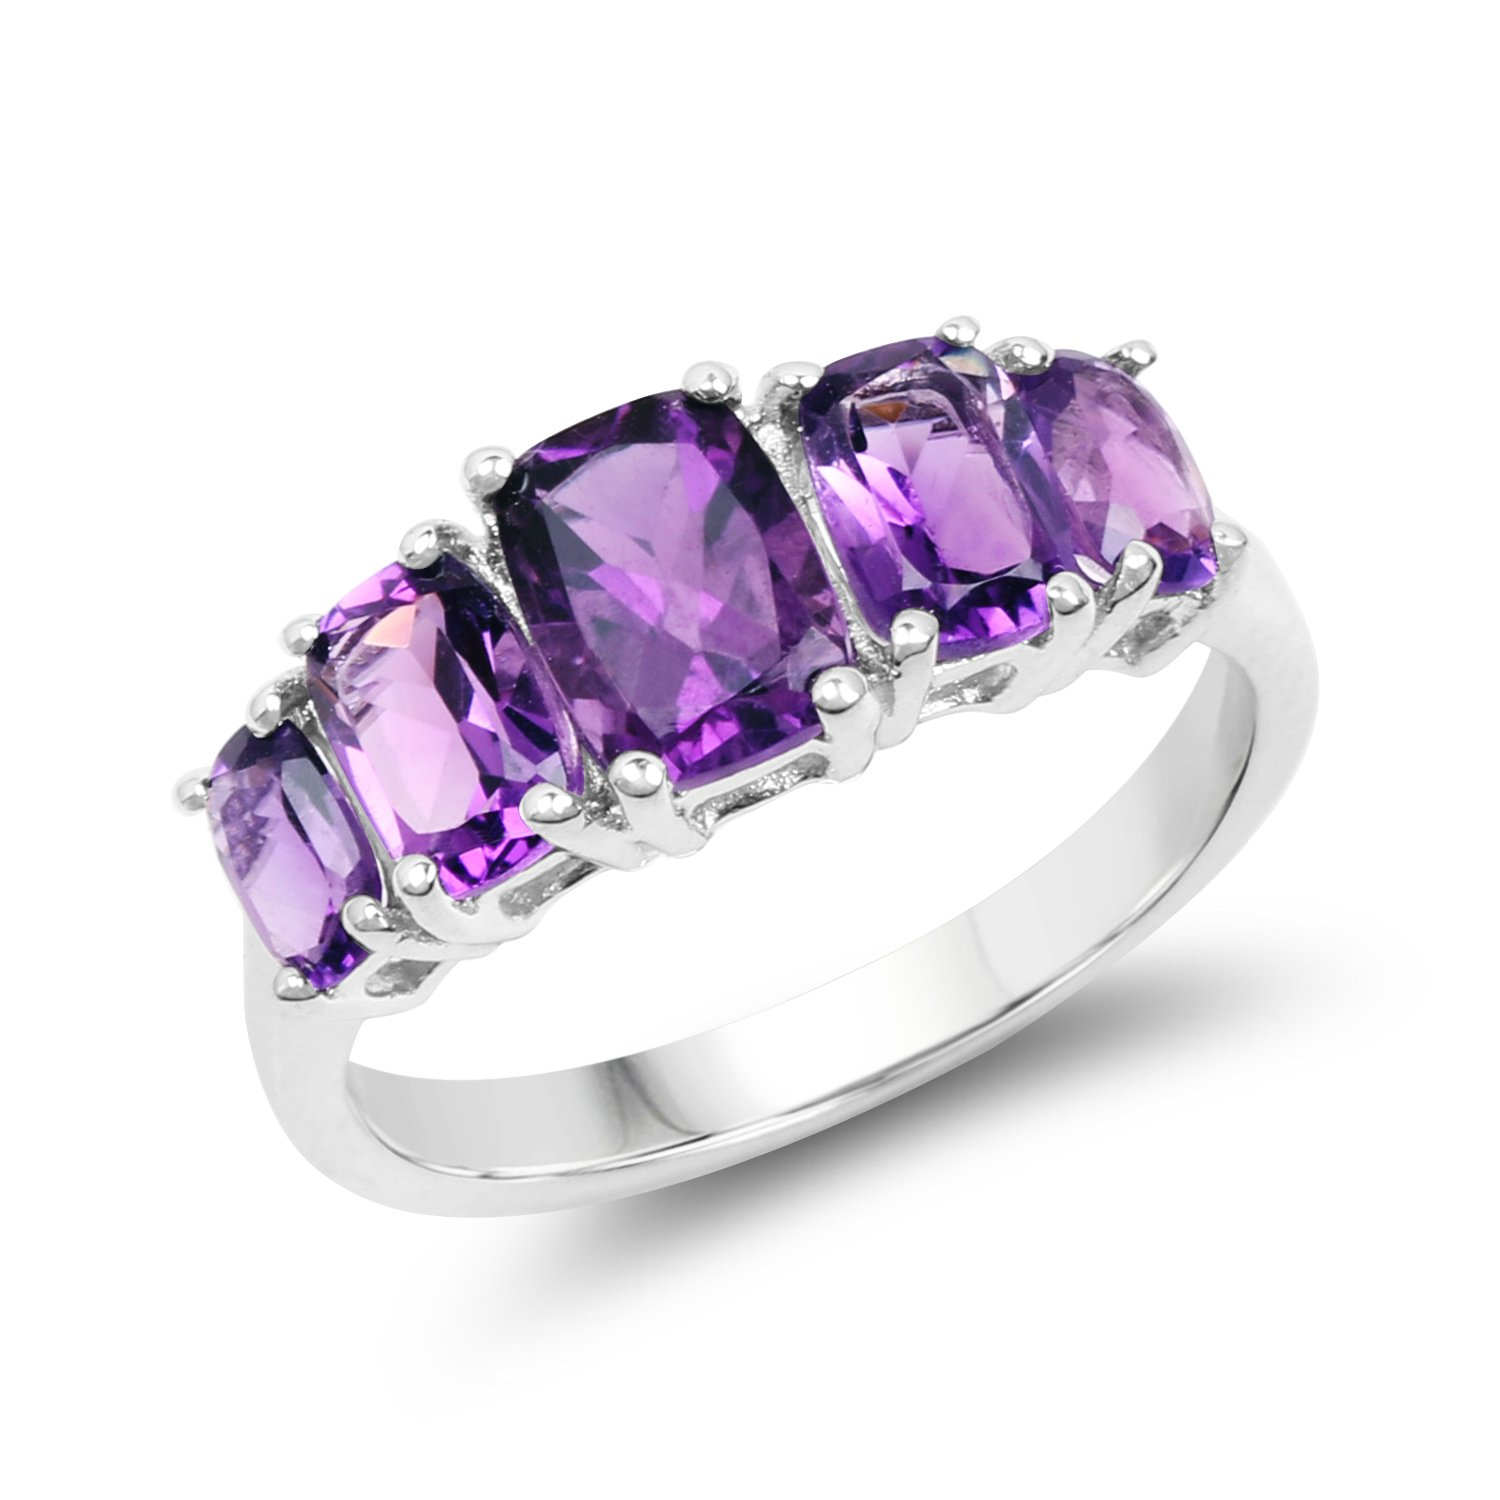 2.34 Carats Genuine African Amethyst Cushion Cut 5 Stone Ring Solid .925 Sterling Silver With Rhodium Plating